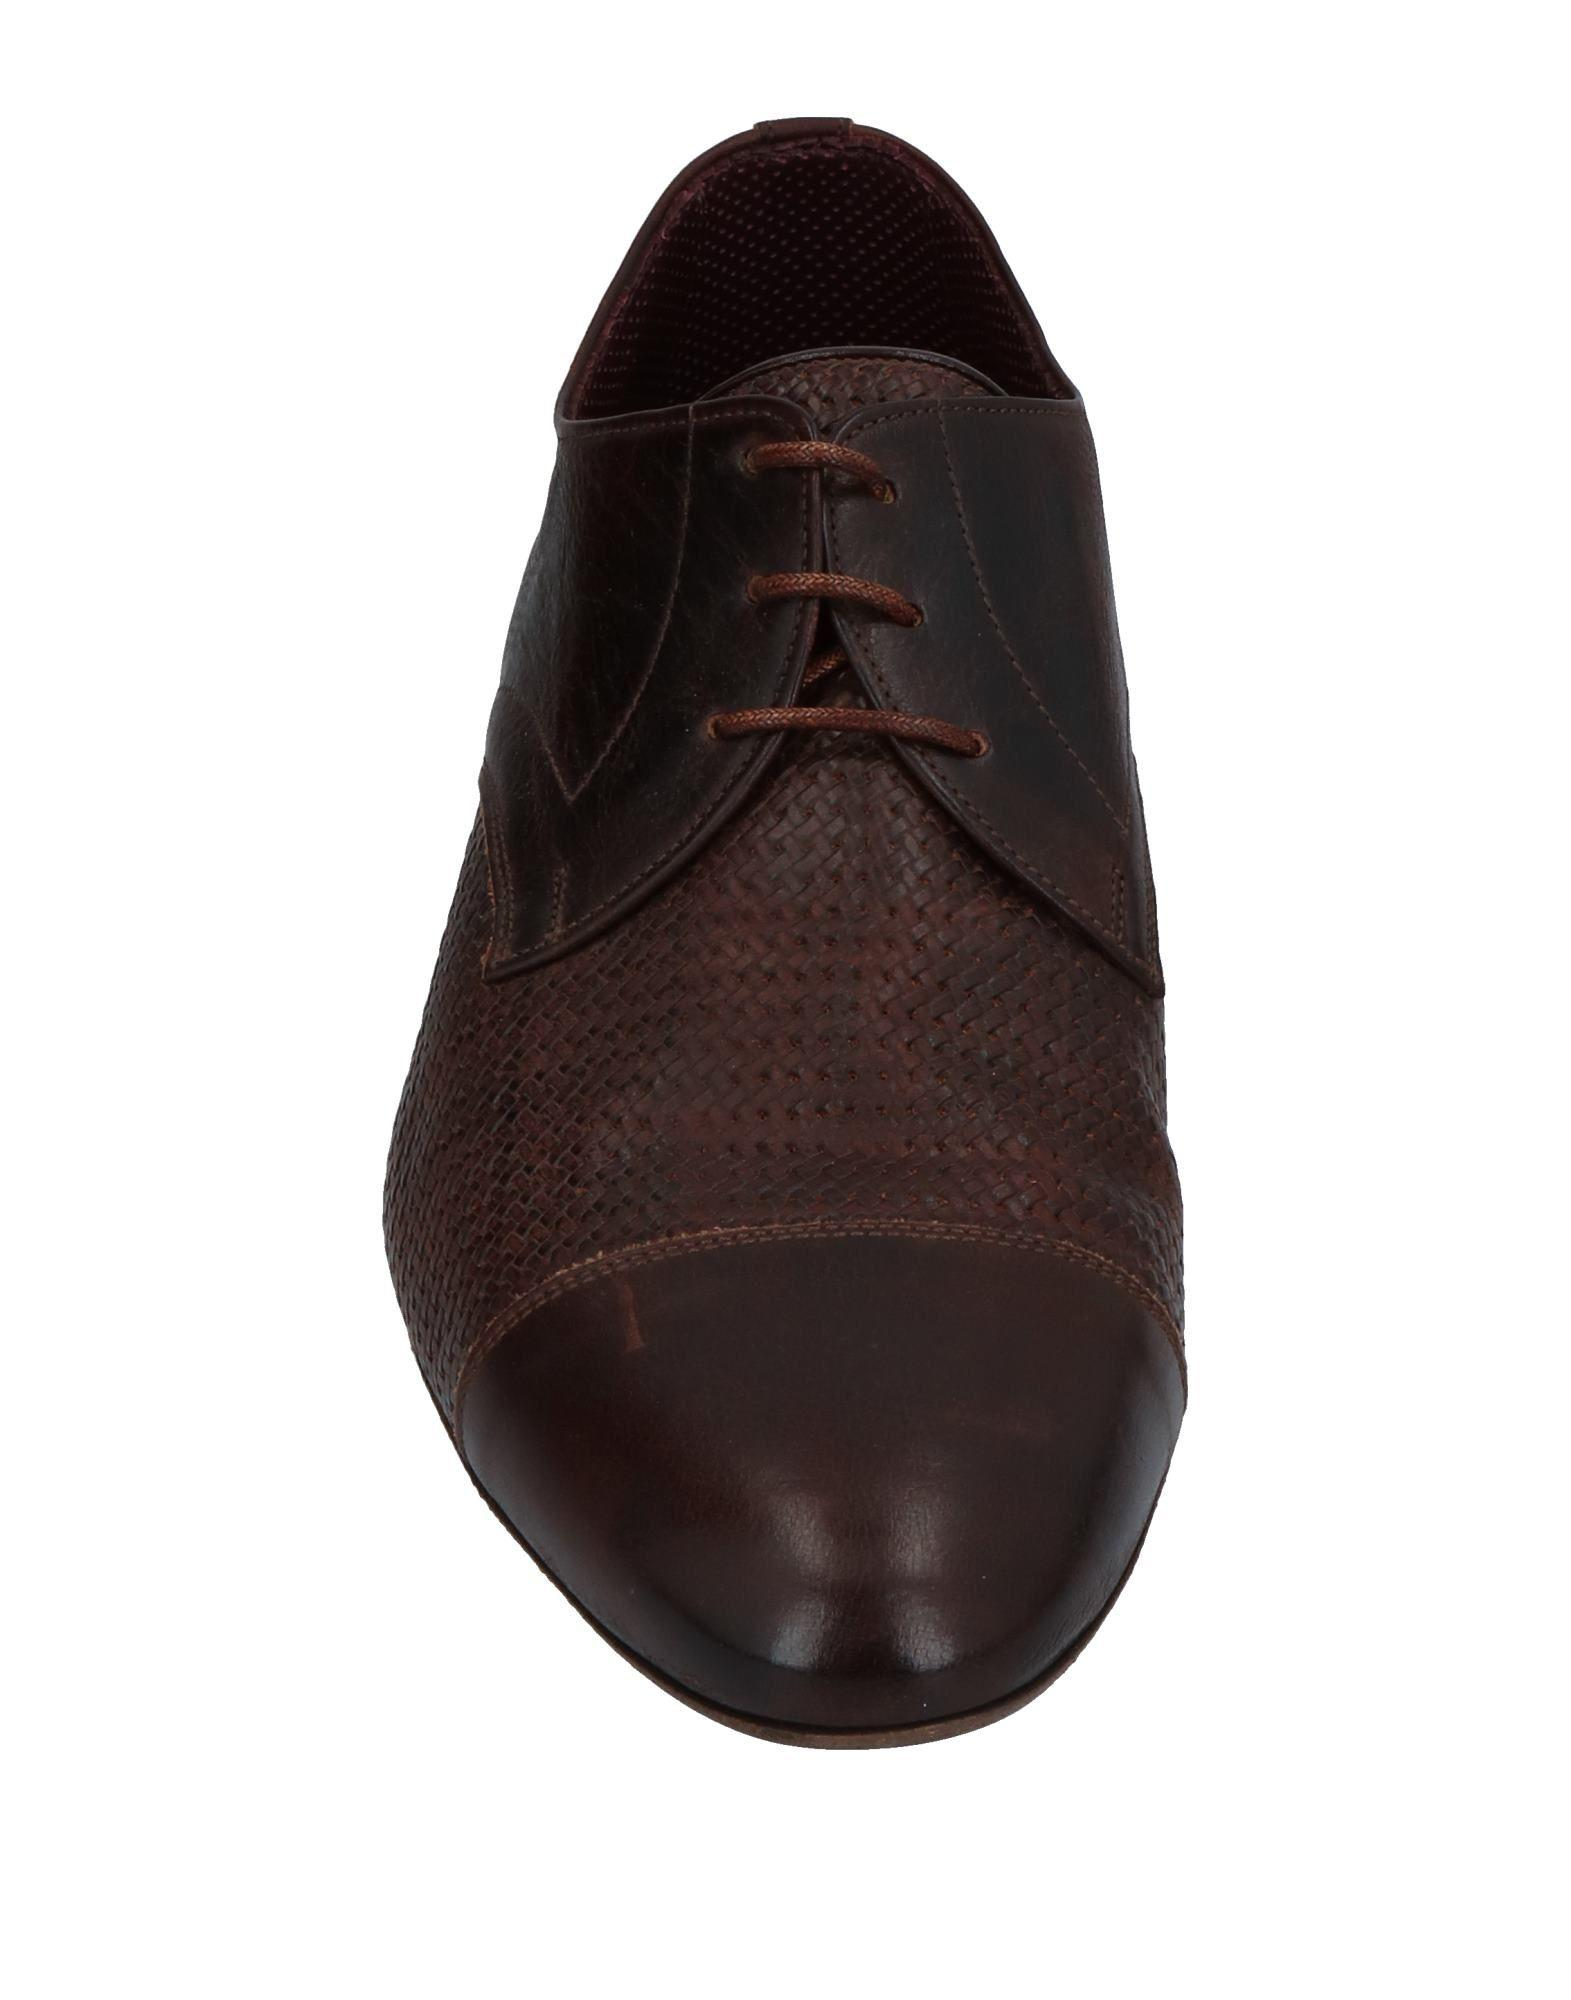 Lidfort Leather Lace-up Shoe in Dark Brown (Brown) for Men